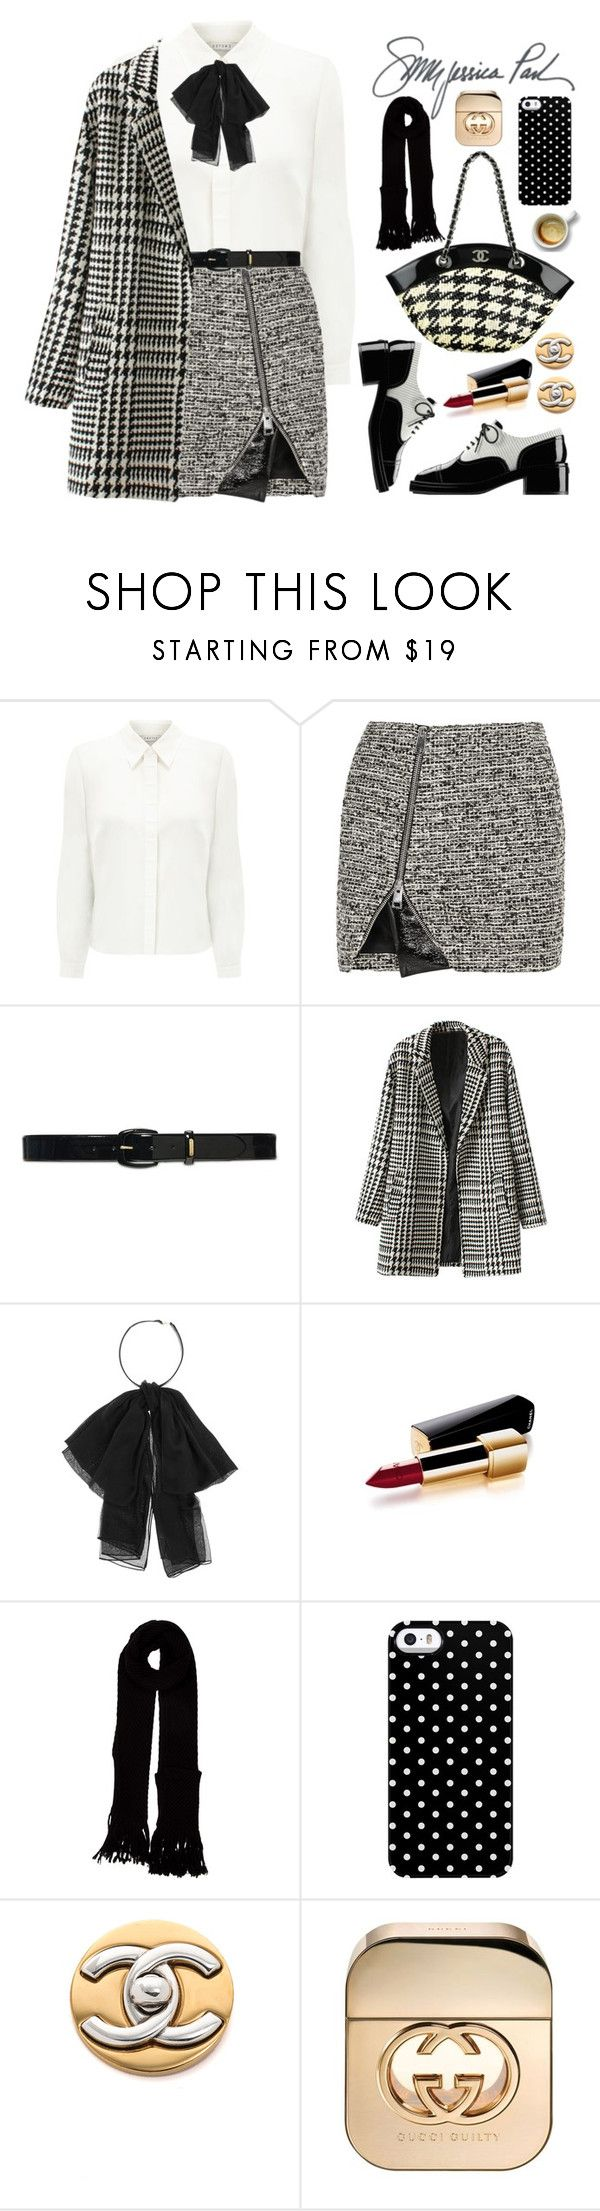 """21.10.16"" by malenafashion27 ❤ liked on Polyvore featuring Eastex, Bouchra Jarrar, Lauren Ralph Lauren, Yves Saint Laurent, Chanel, Louis Vuitton, Uncommon and Gucci"